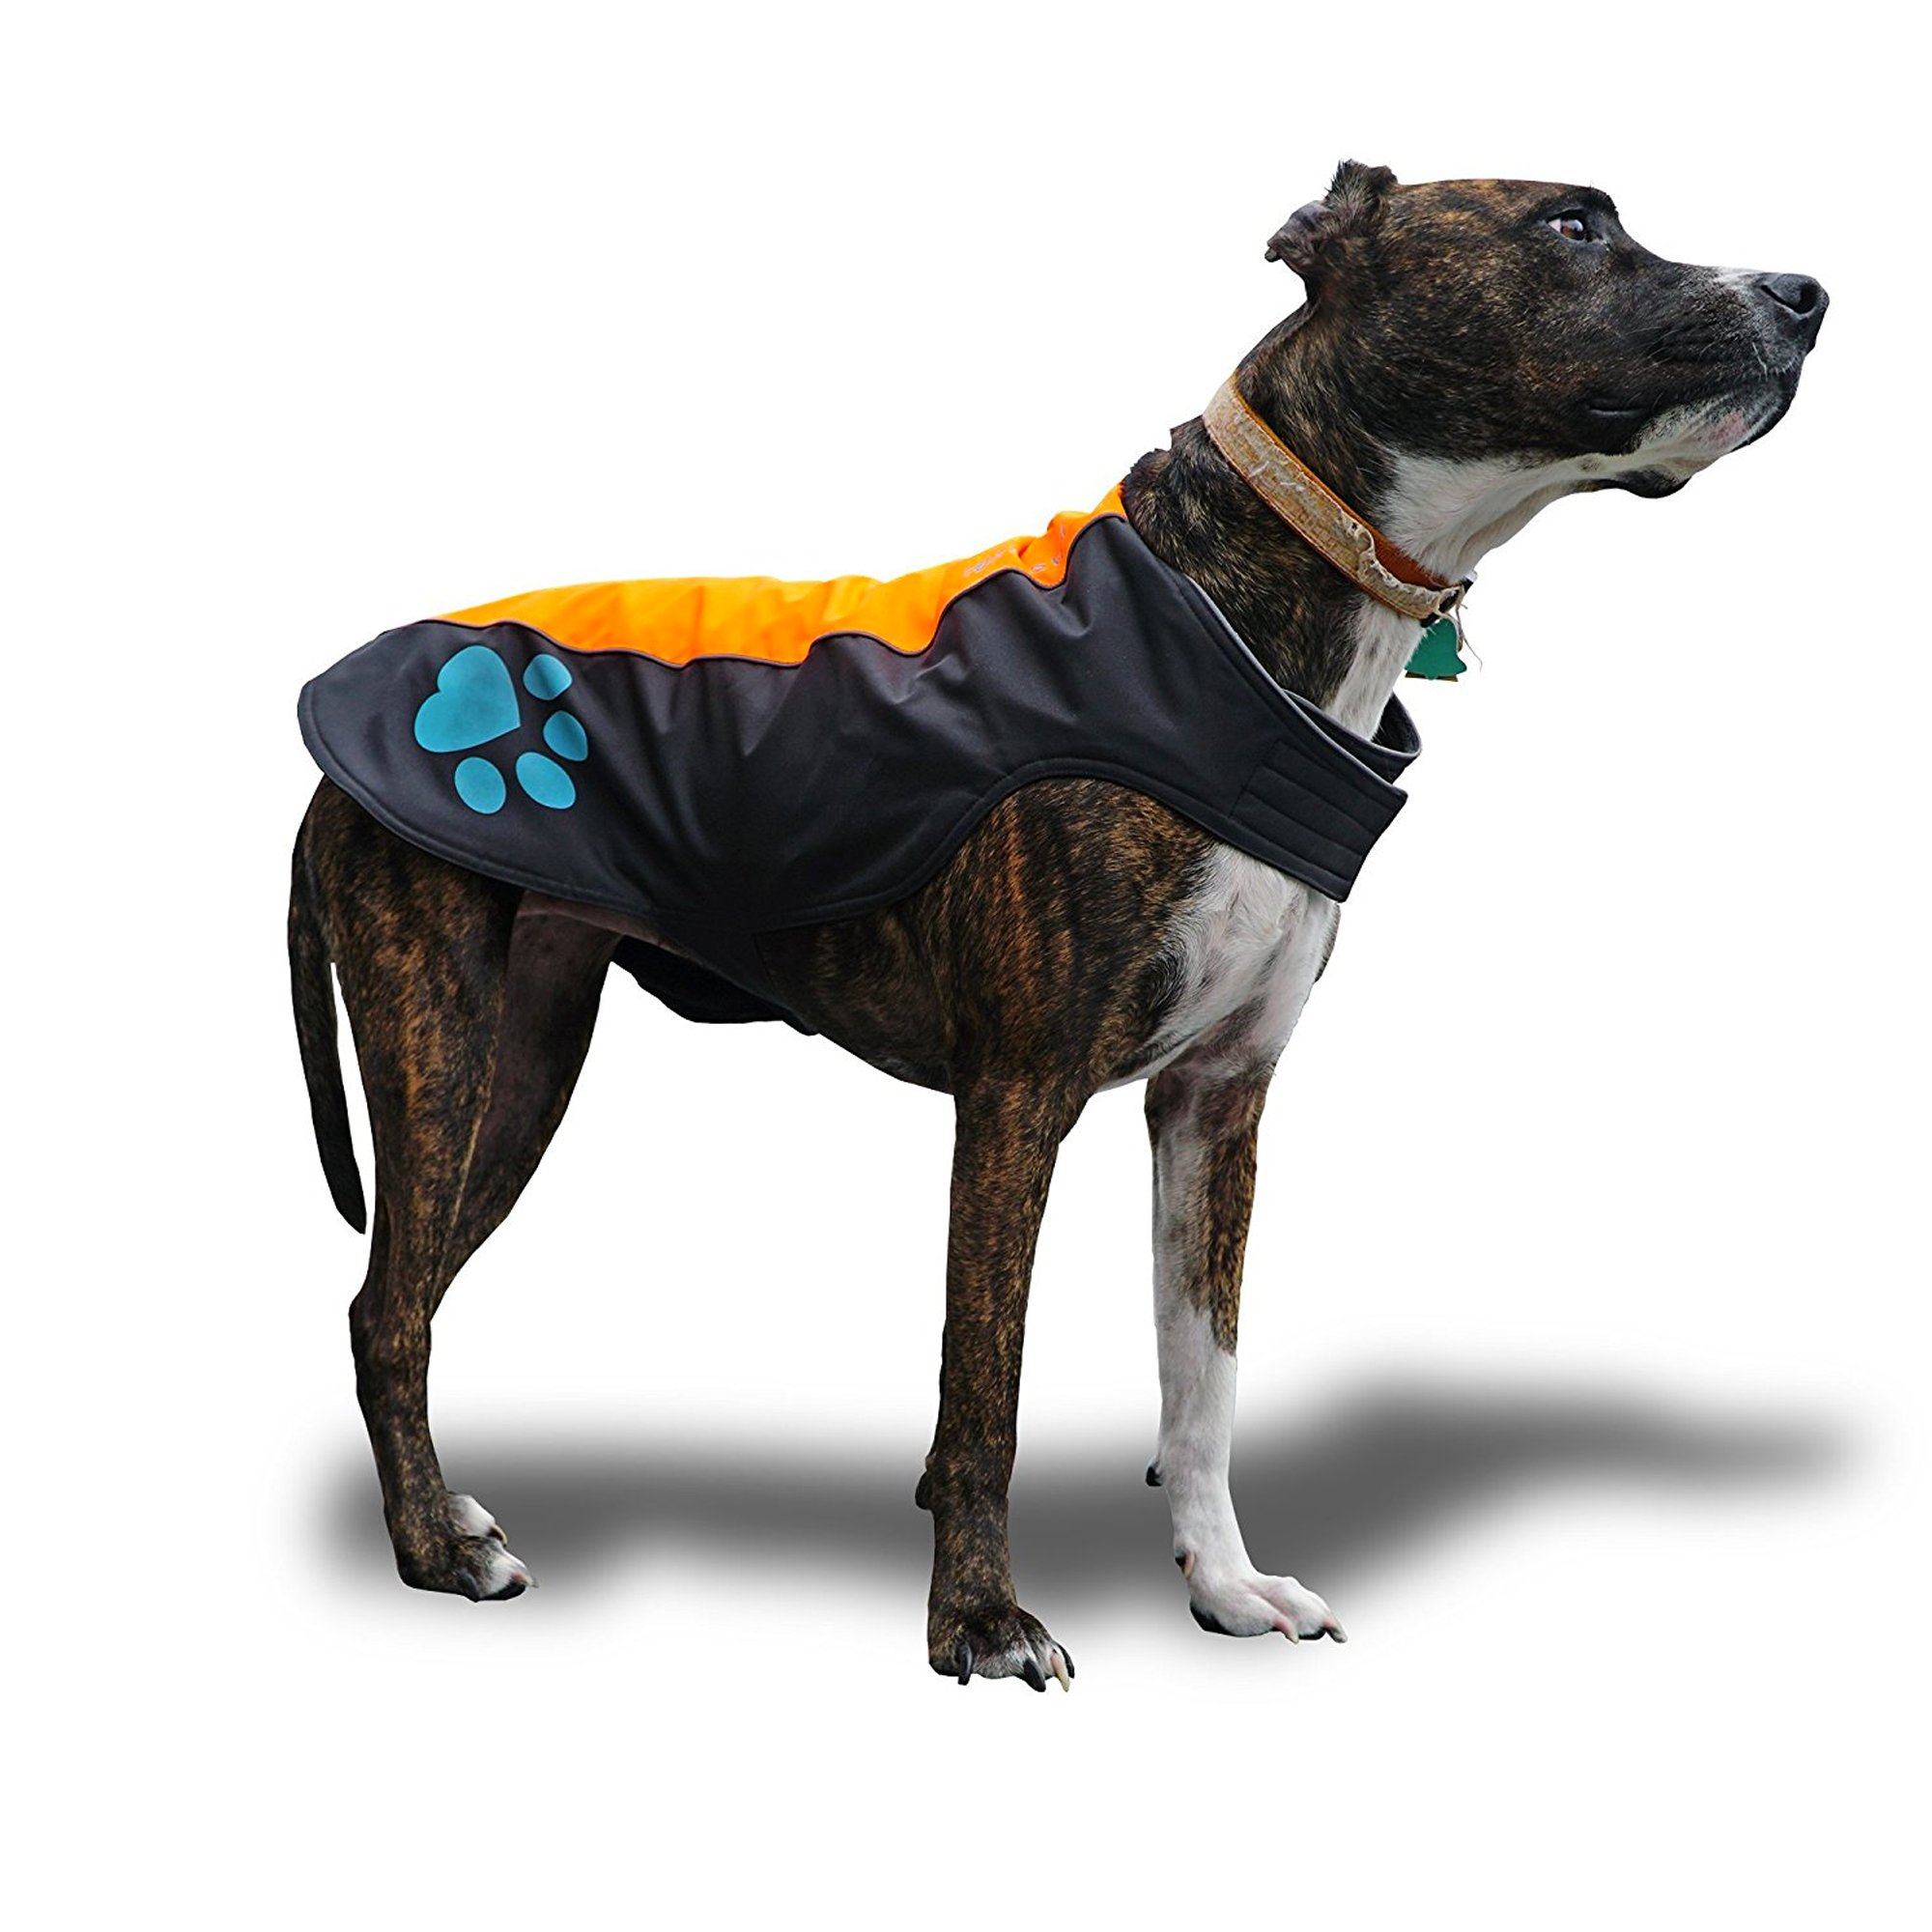 SafetyPUP XD Dog Rain Vest - Waterproof Dog Jacket for Large and Small Dogs. Hi Visibility, Reflective Vest with Fleece Lining for Extra Warmth and Protection. Please Take Note of Sizing (Medium)